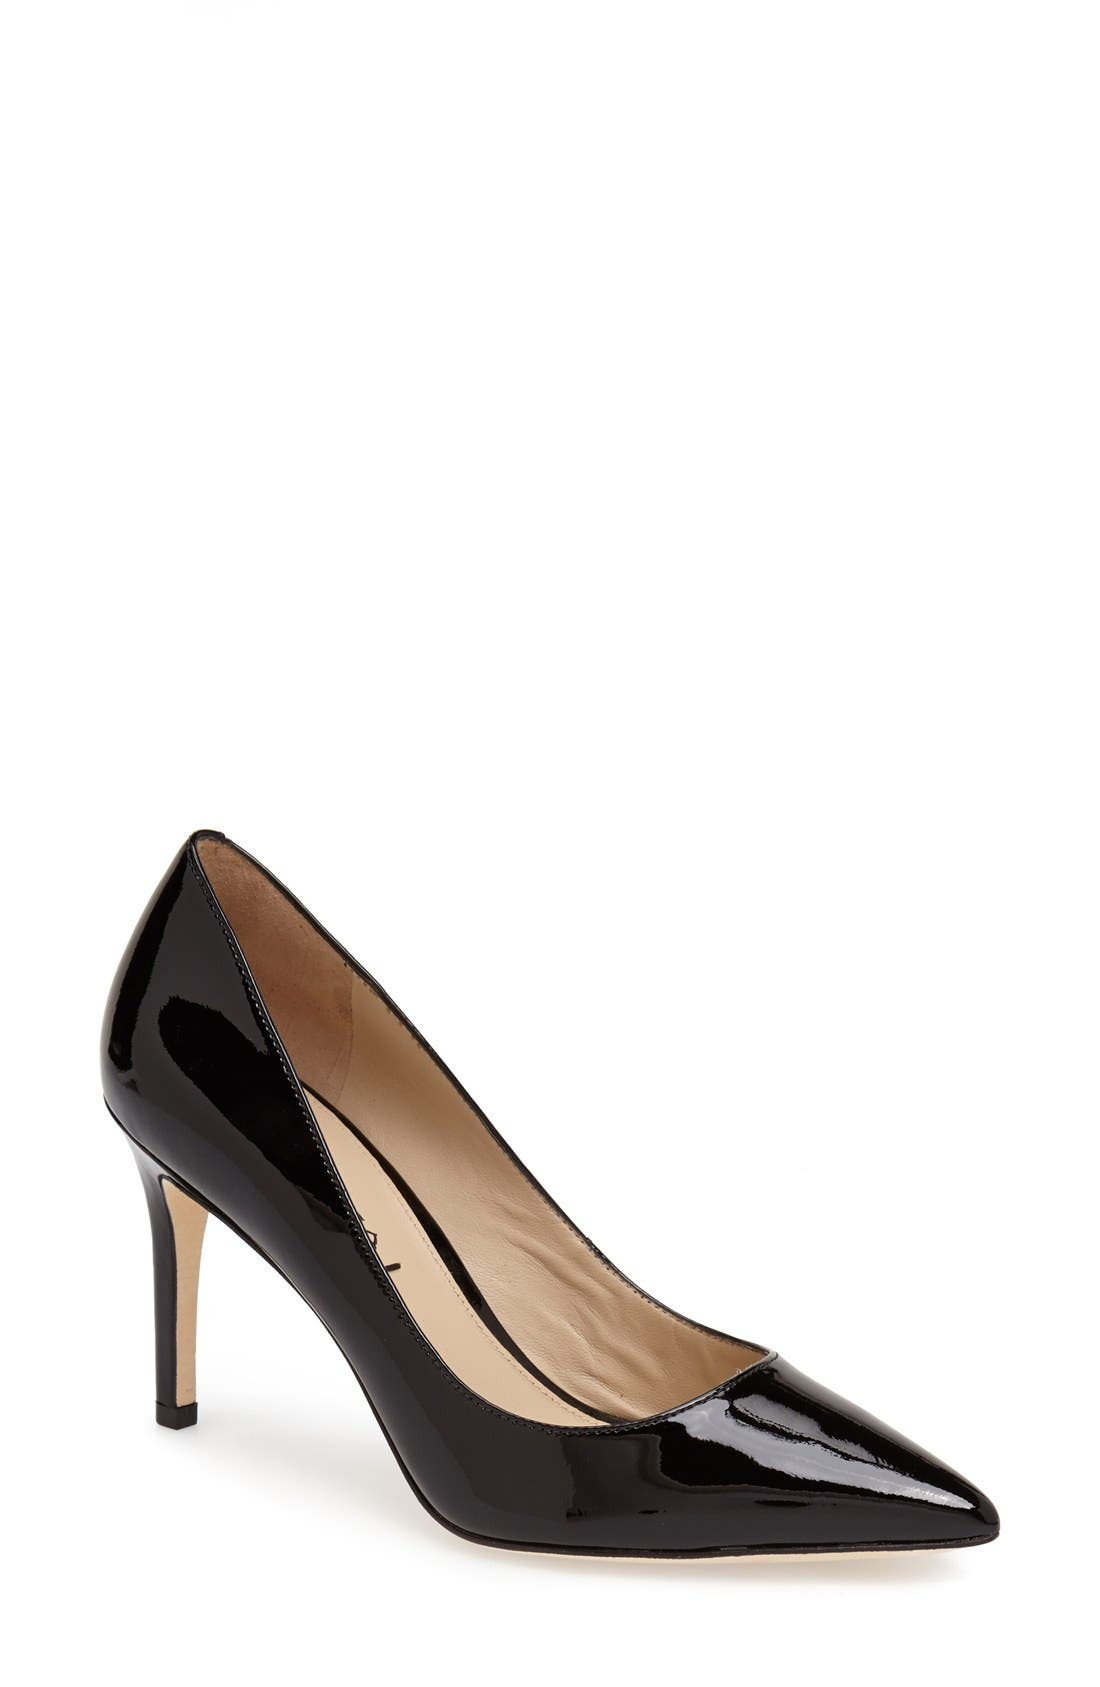 'Carola' Pointy Toe Pump,                             Main thumbnail 1, color,                             001